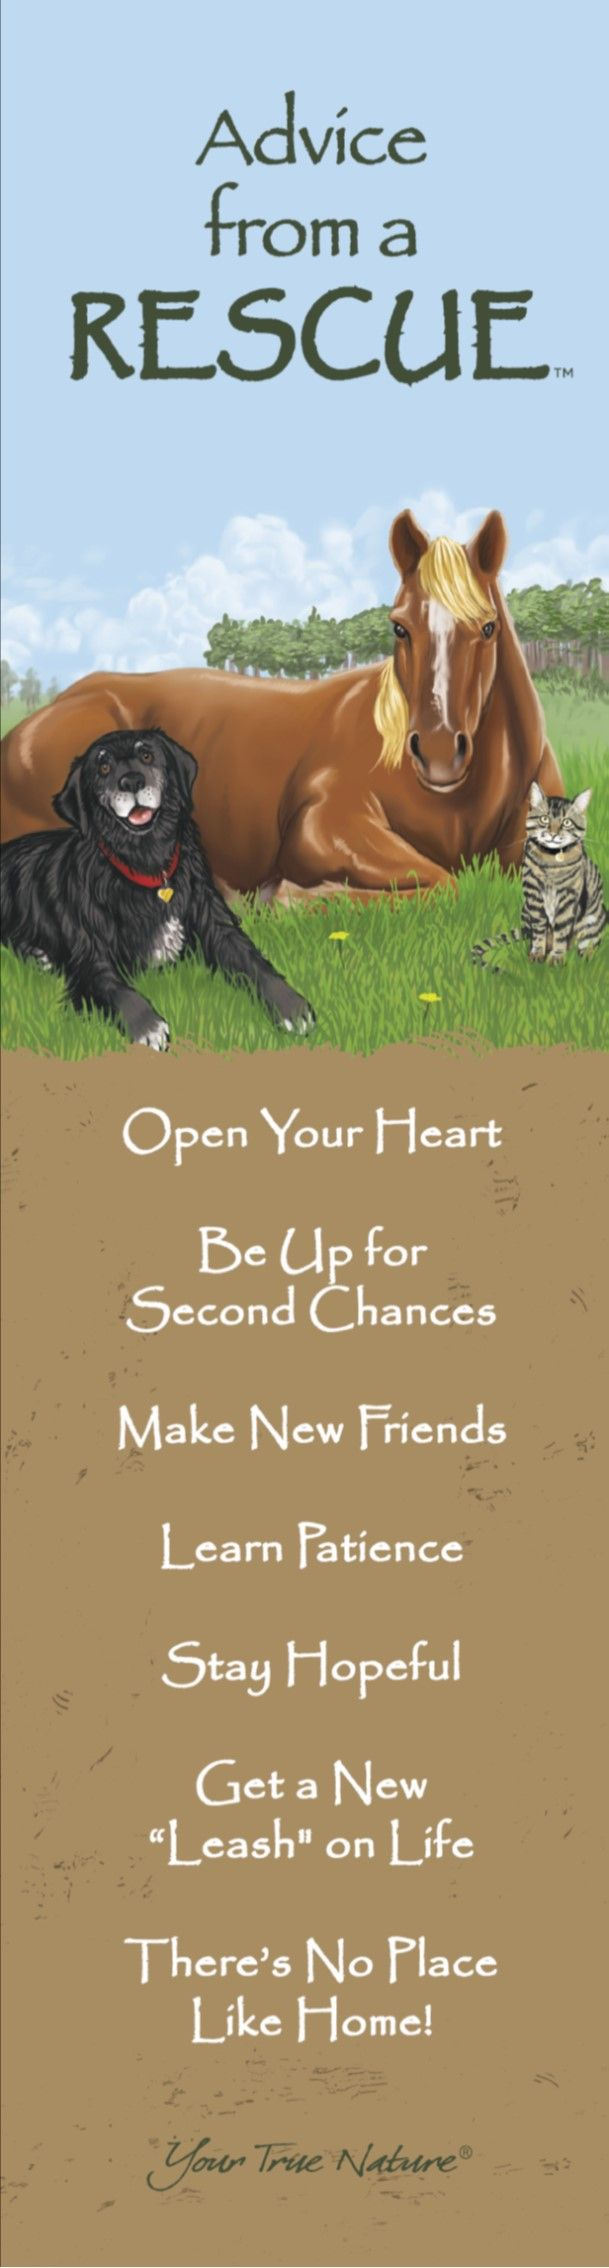 Advice from a rescue bookmark your true nature quotesremember